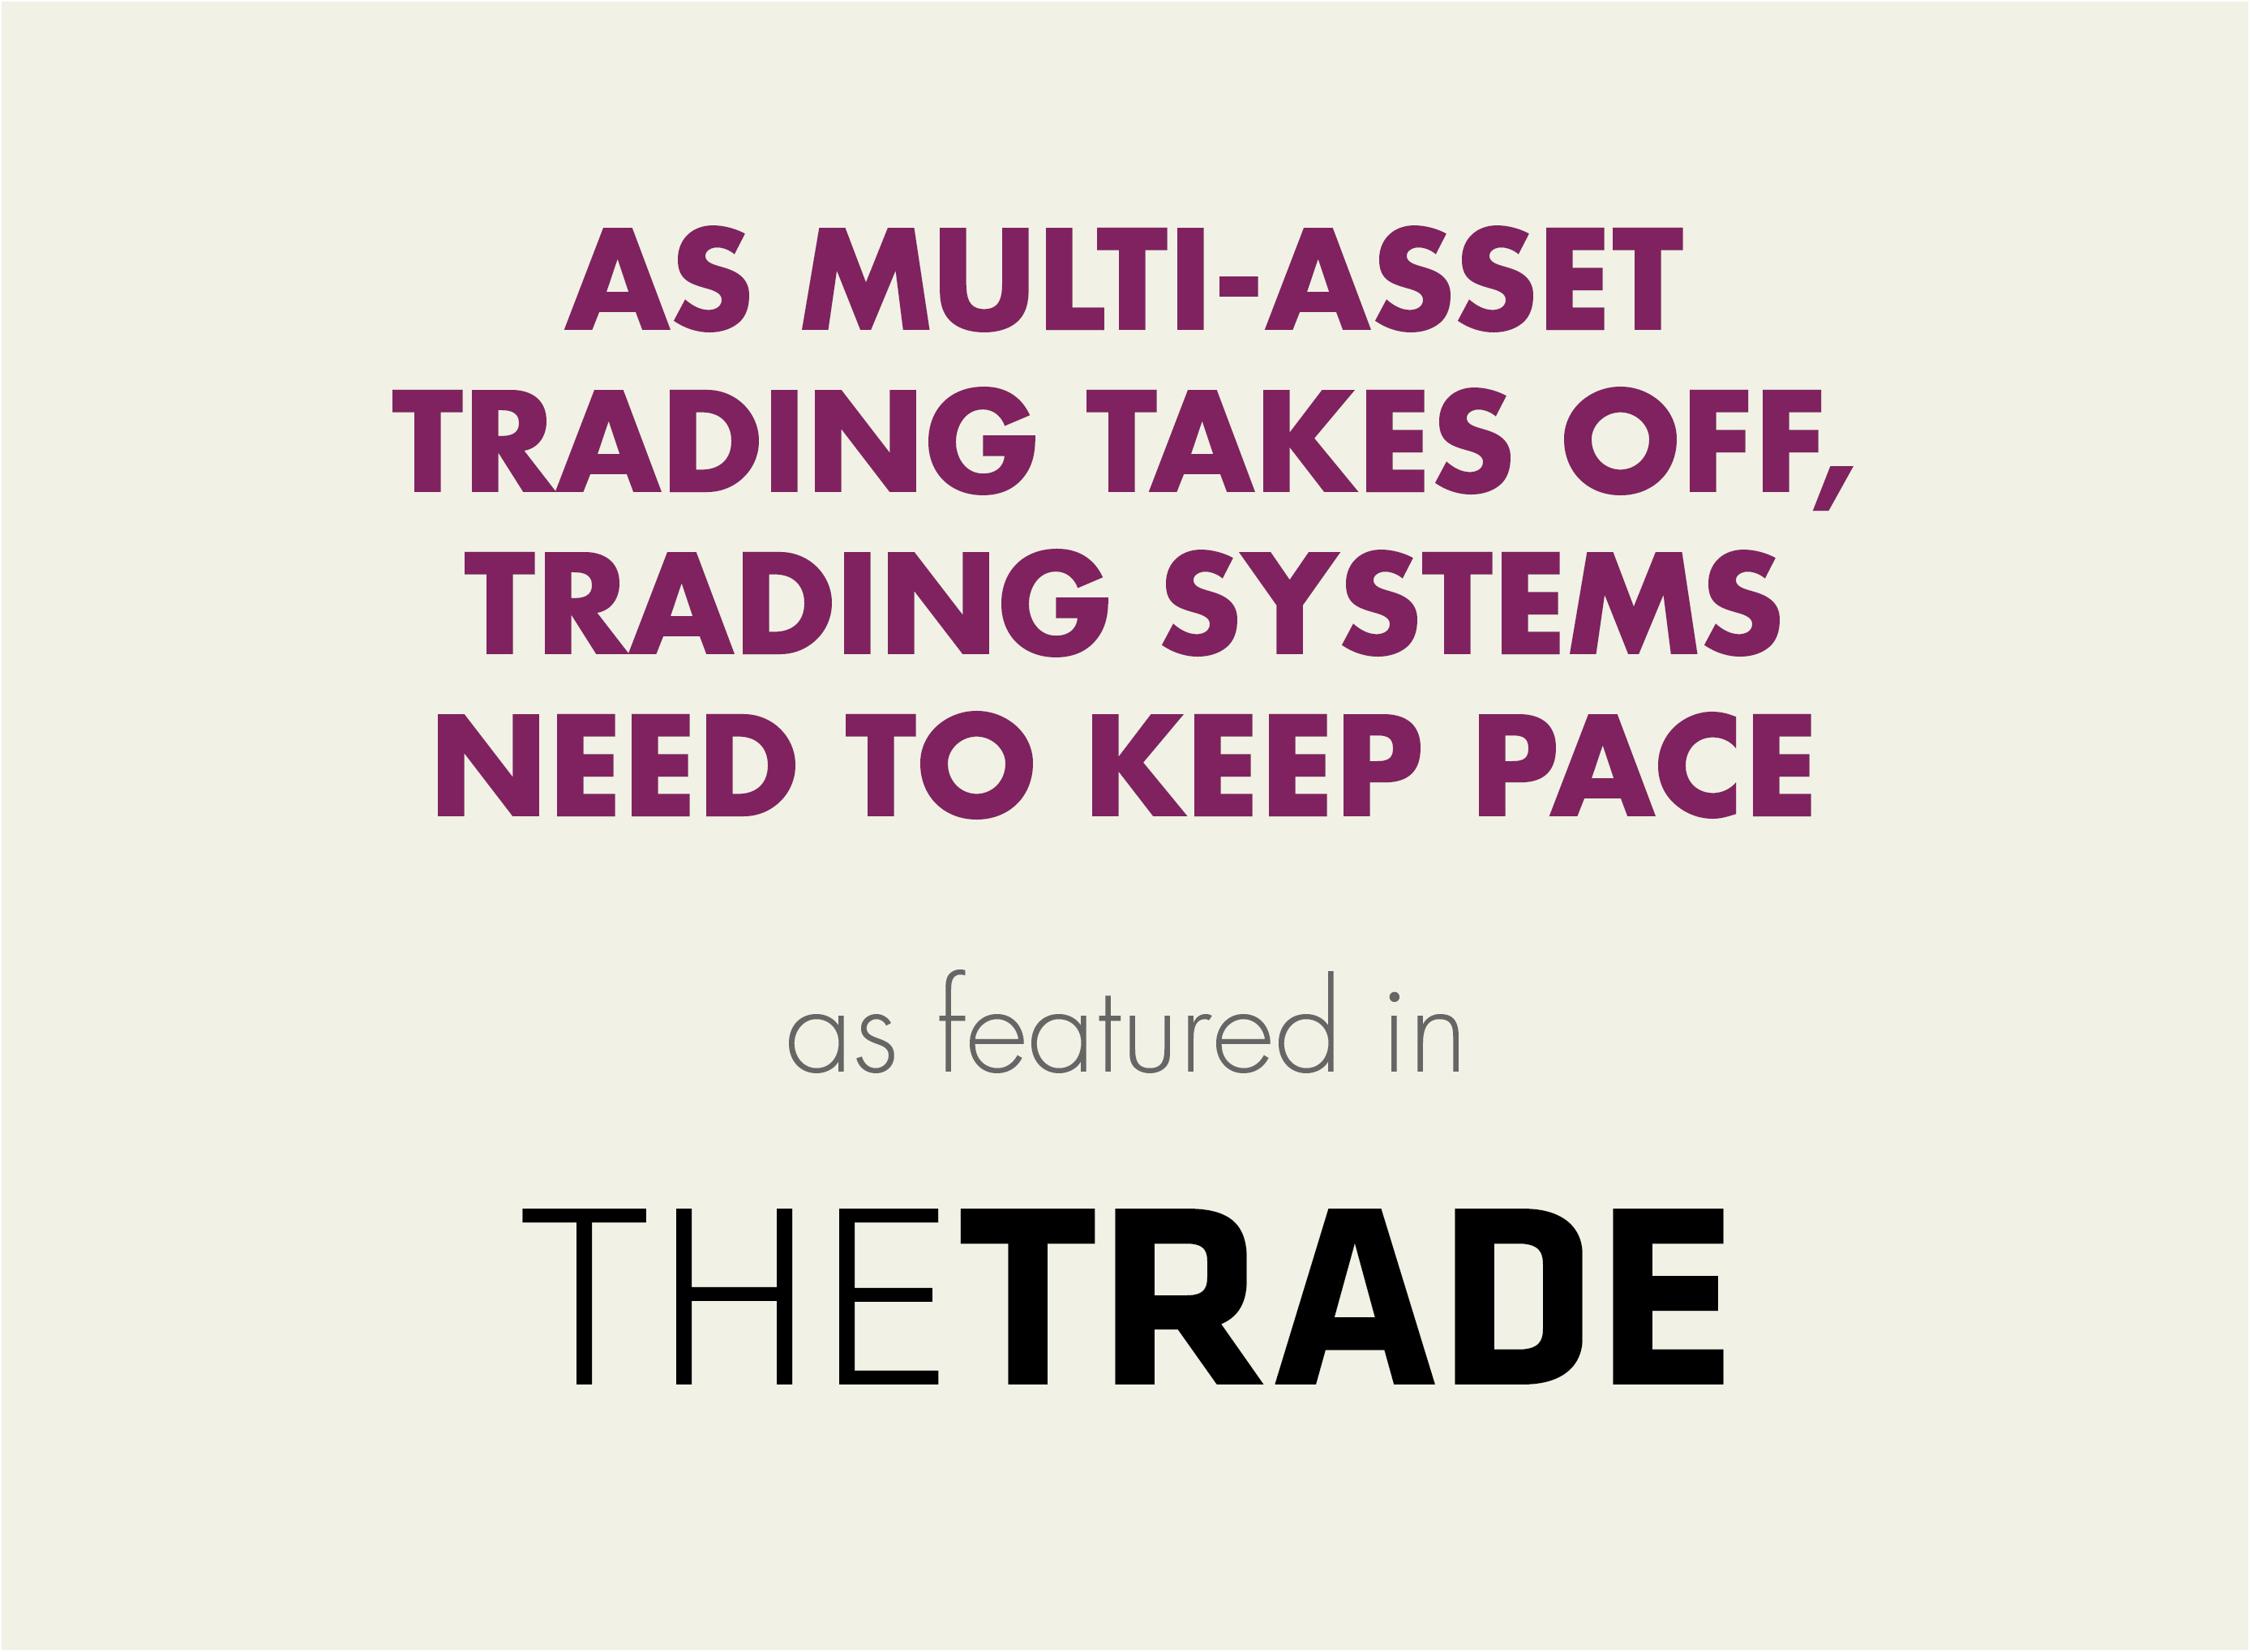 As multi-asset trading takes off, trading systems need to keep pace